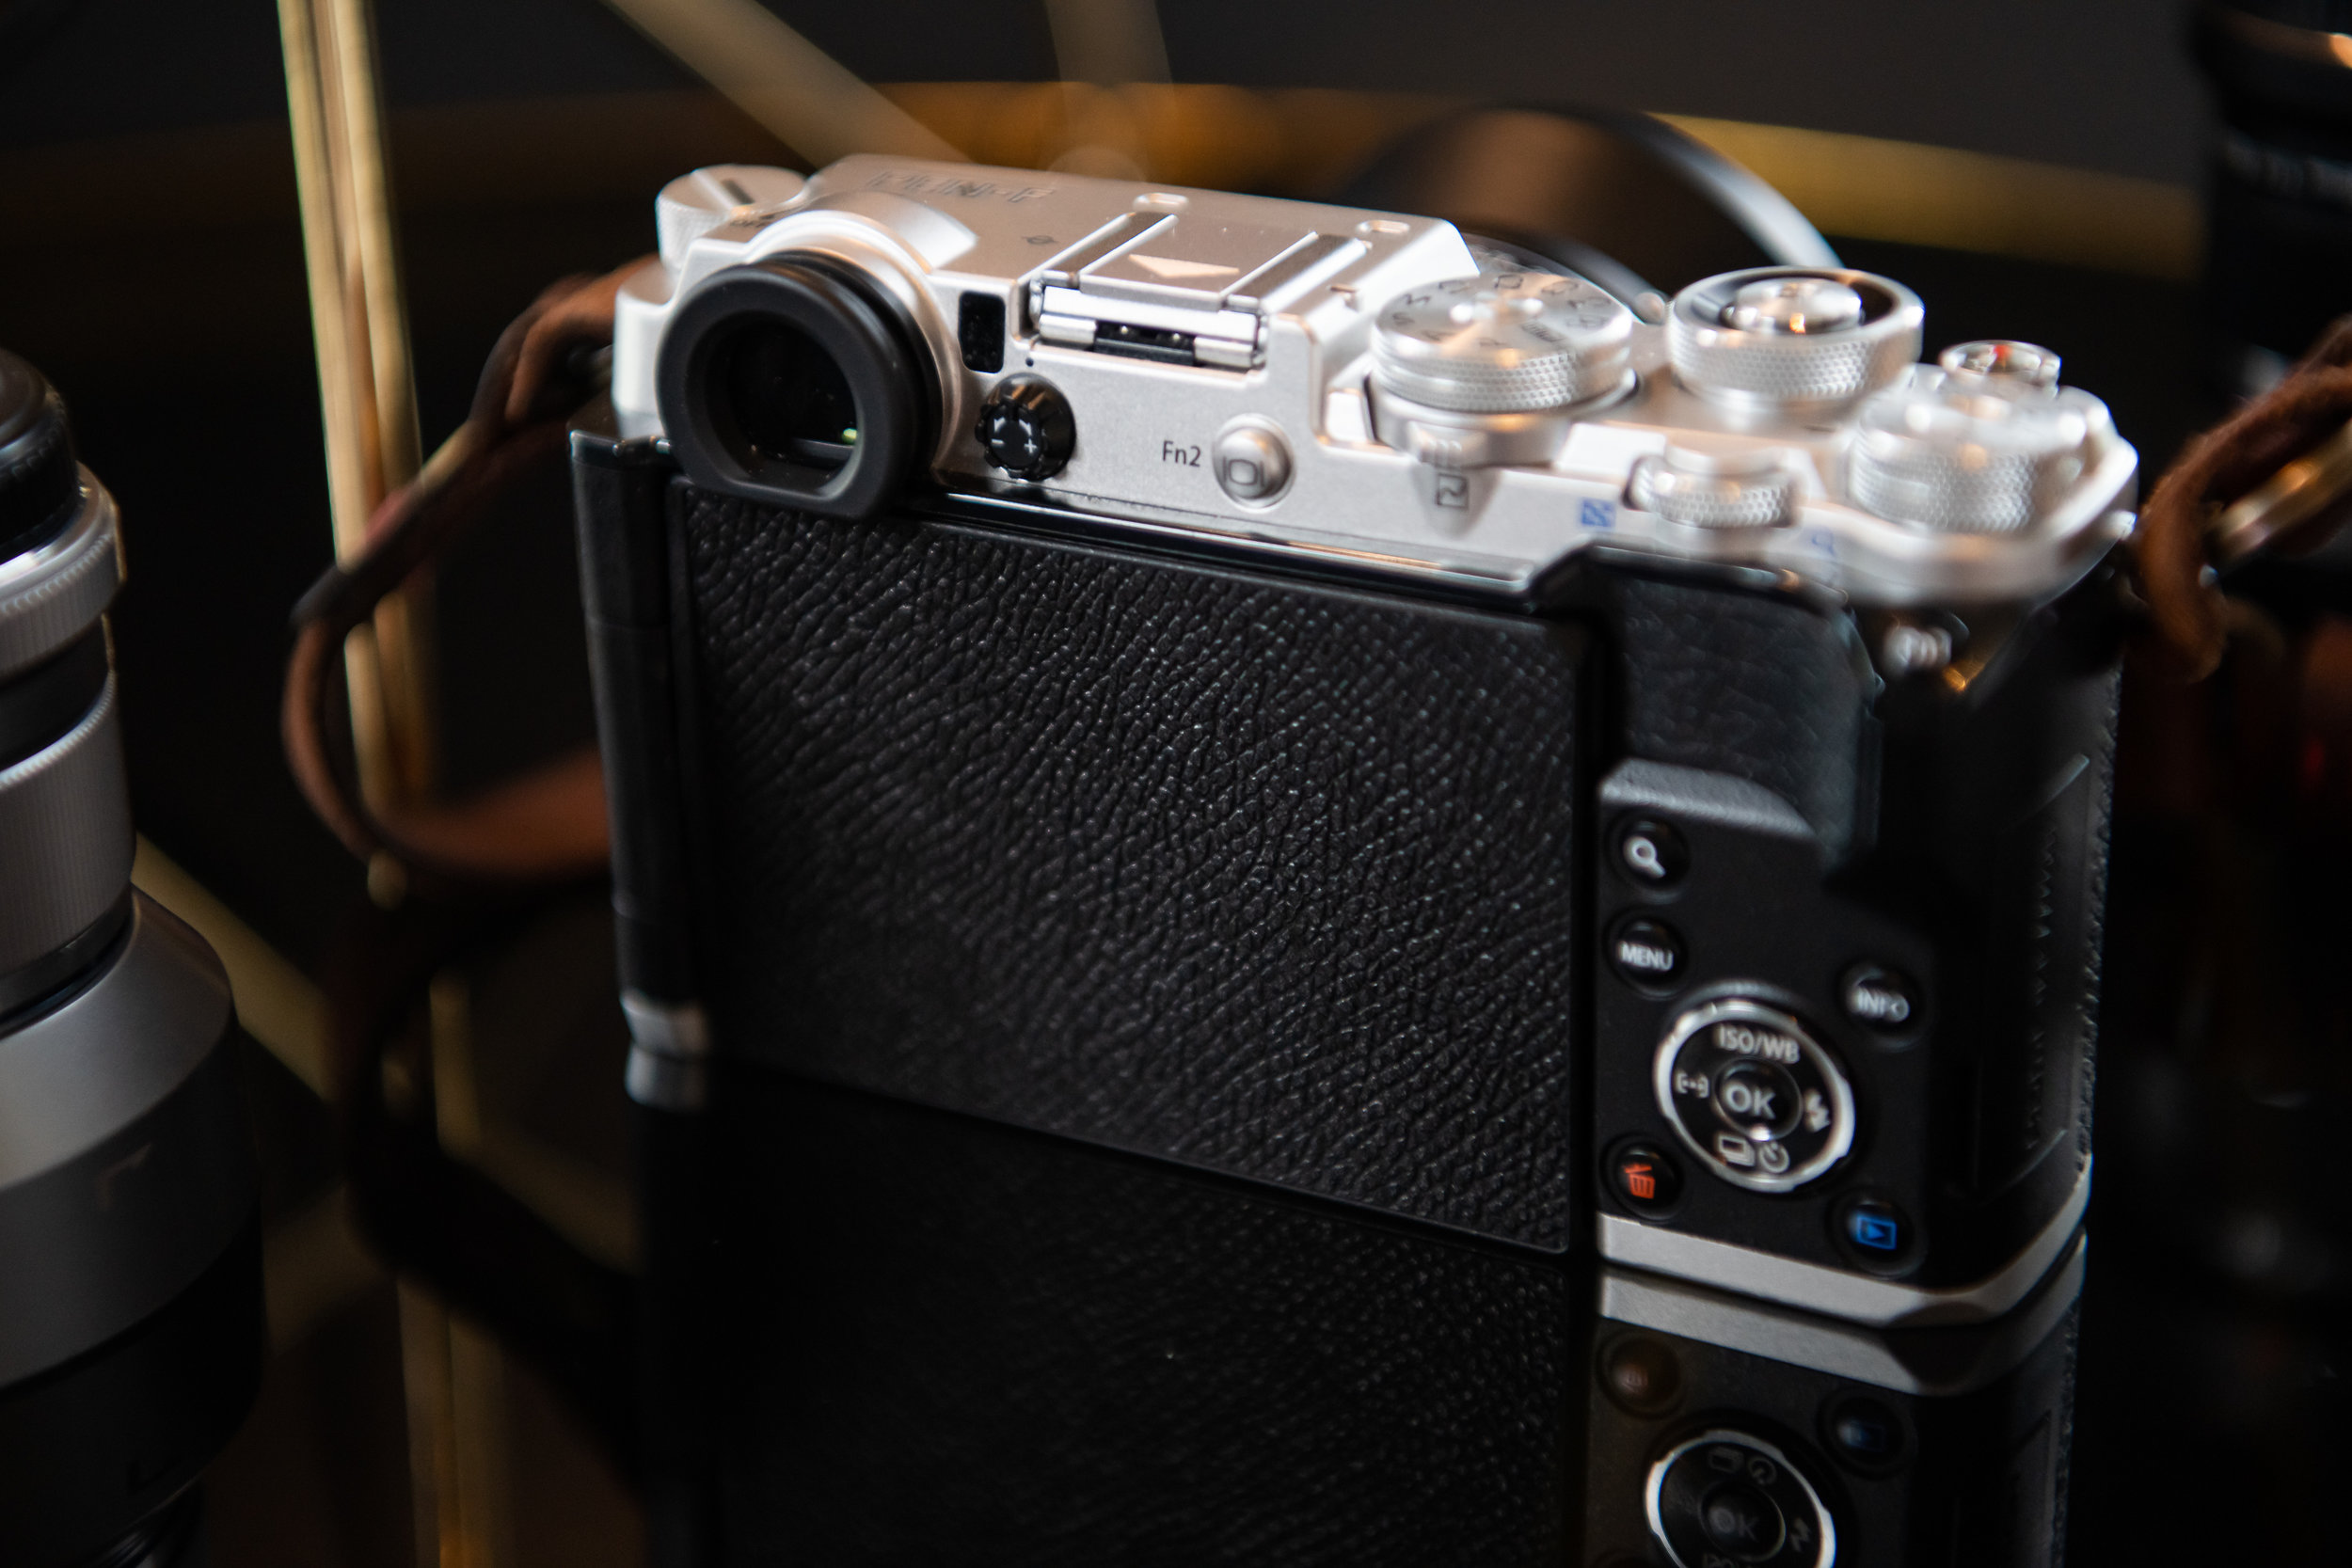 Ok, who stole my LCD?? Jokes aside, Leica charge a lot for a camera with no LCD…